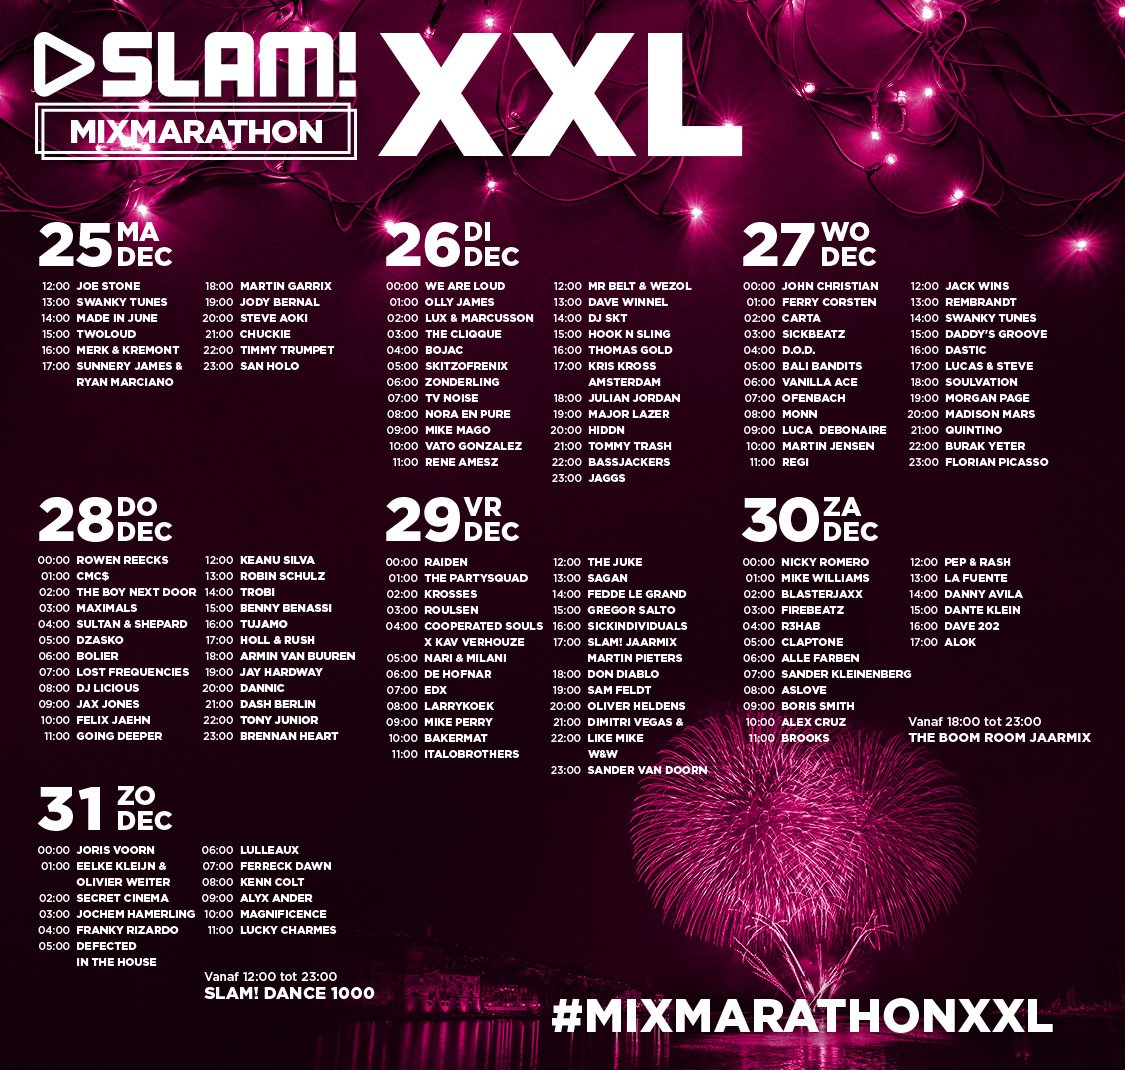 SLAM! Mix Marathon XXL